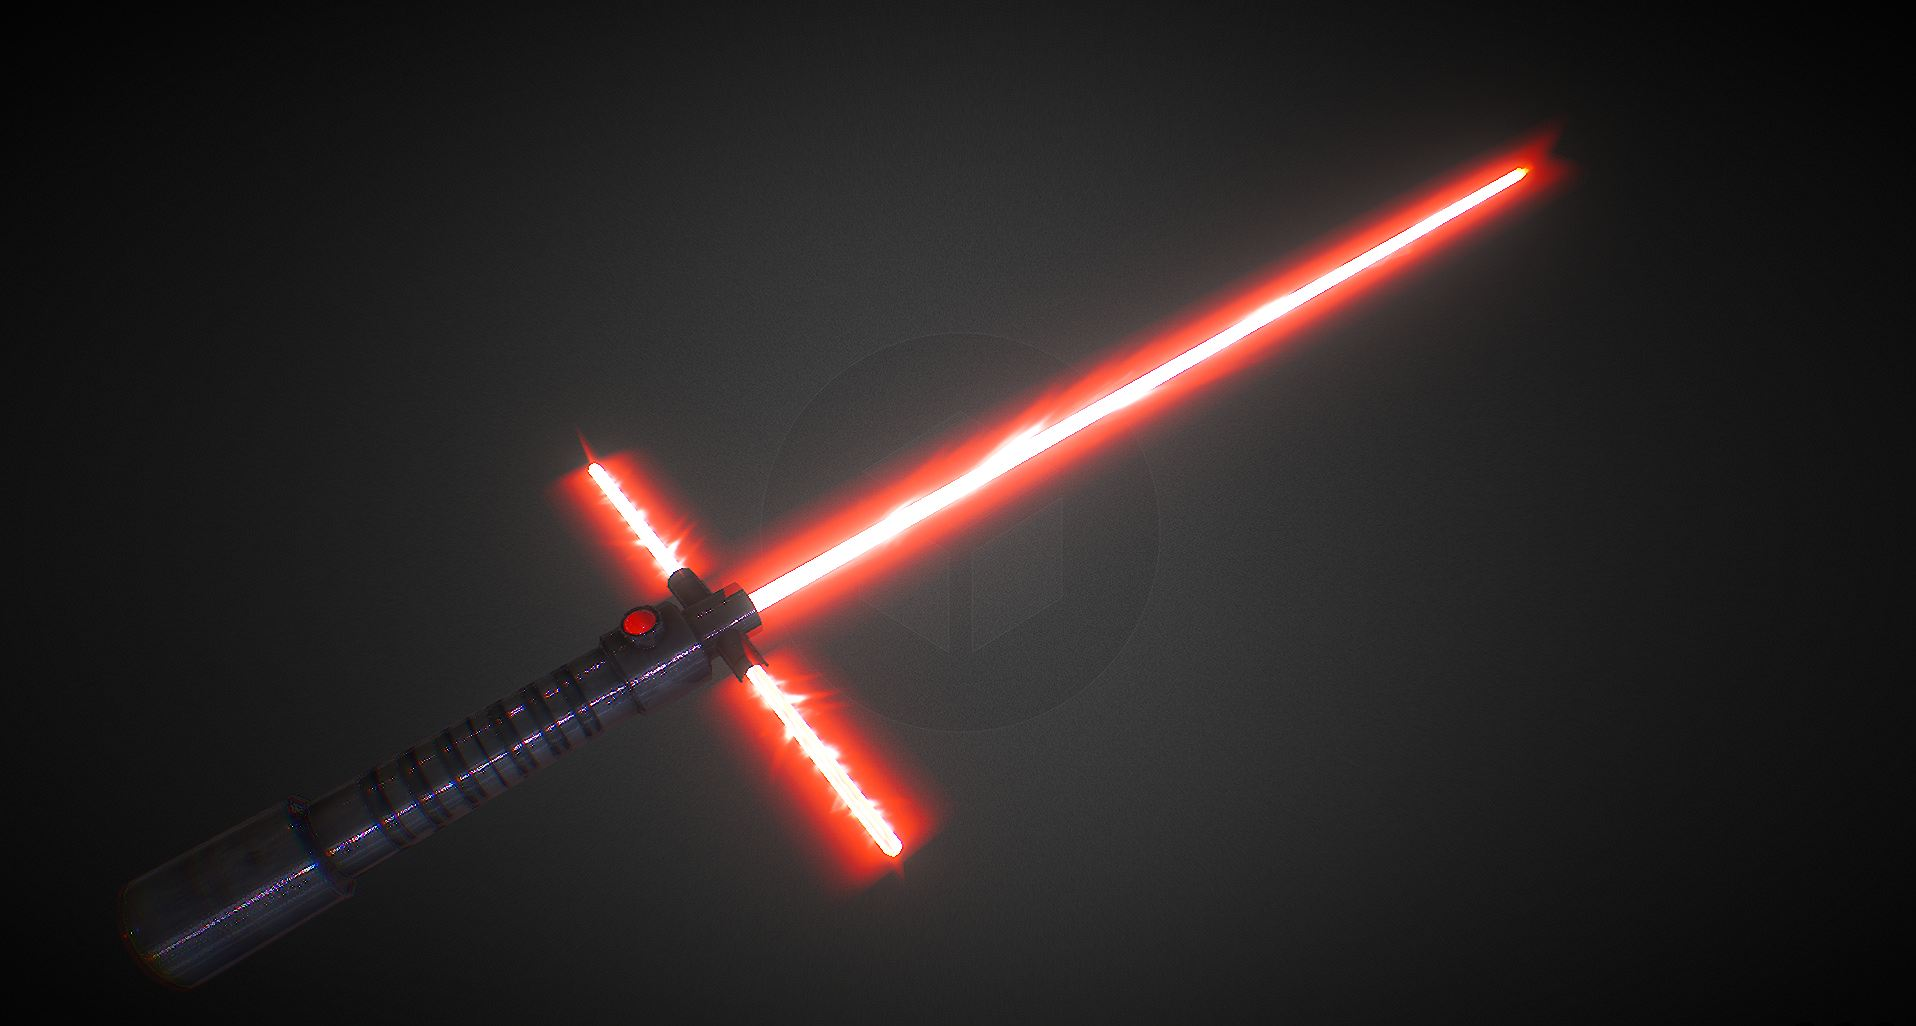 3d star wars vii sith lightsaber by gravitybwlast on for 3d star net